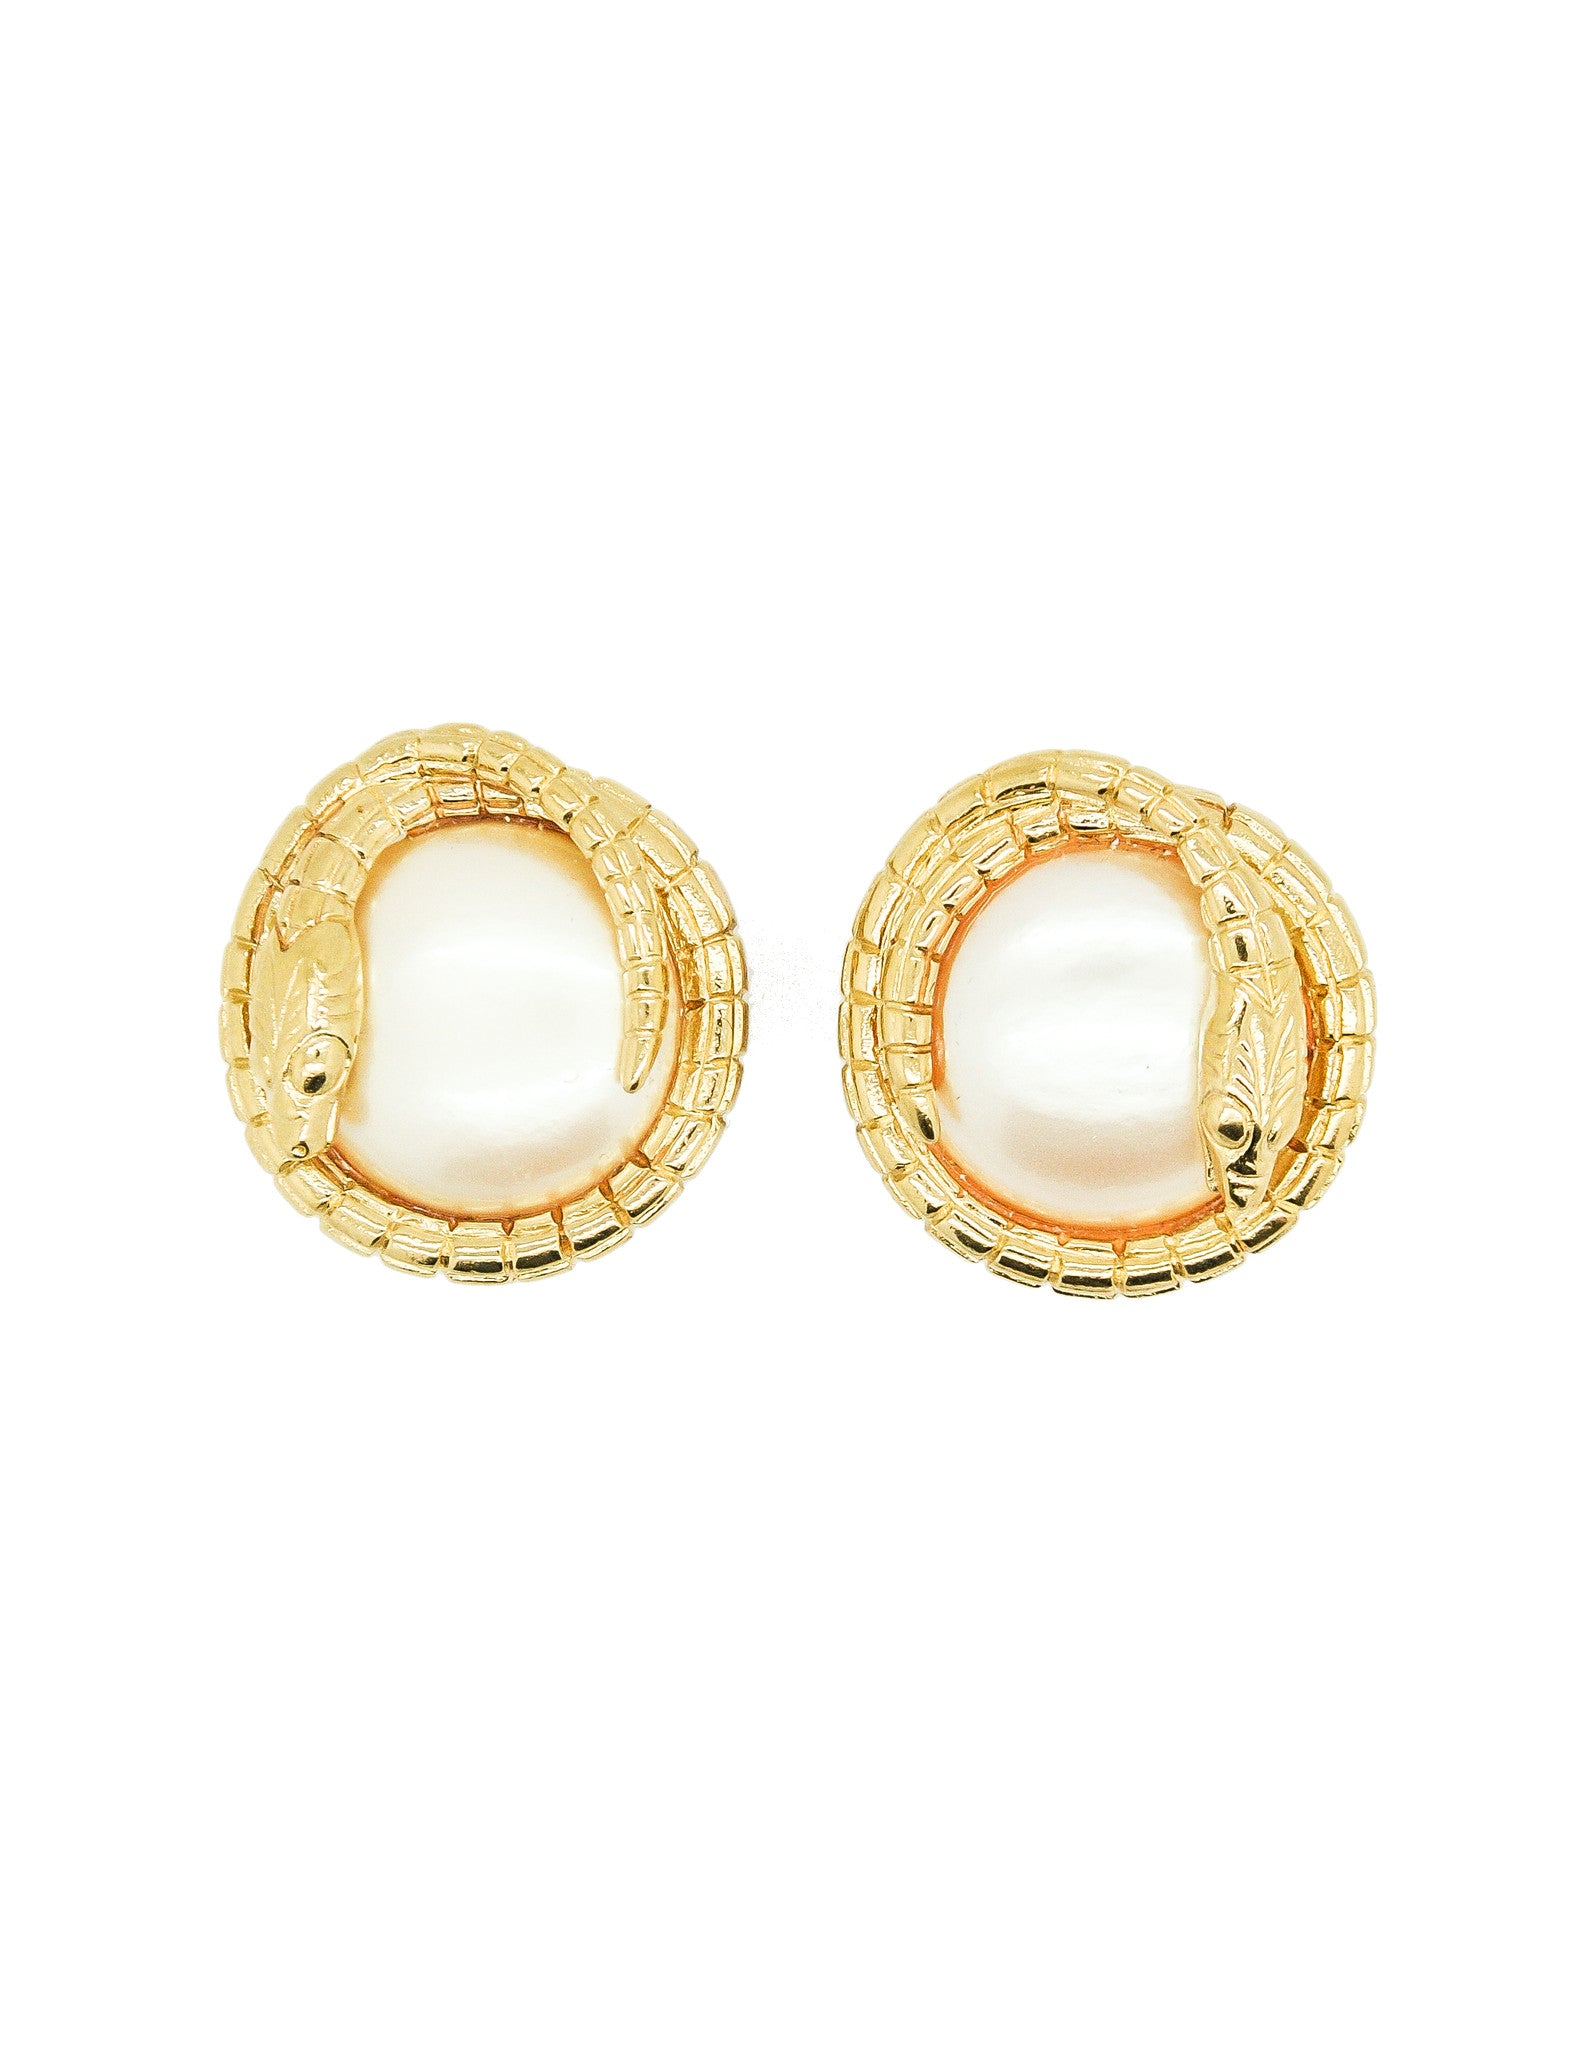 gold logos vintage and cc chanel jewelry pin earrings logo